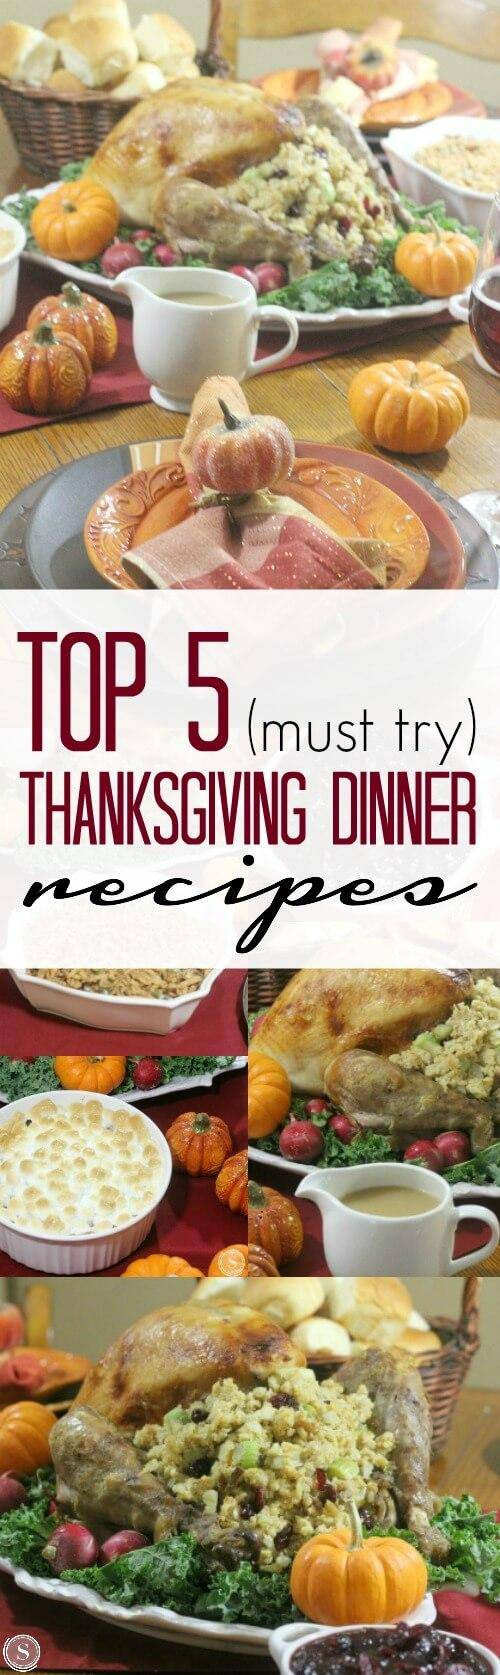 Shoprite Thanksgiving Dinner  How to Make a Homemade Thanksgiving Turkey Dinner